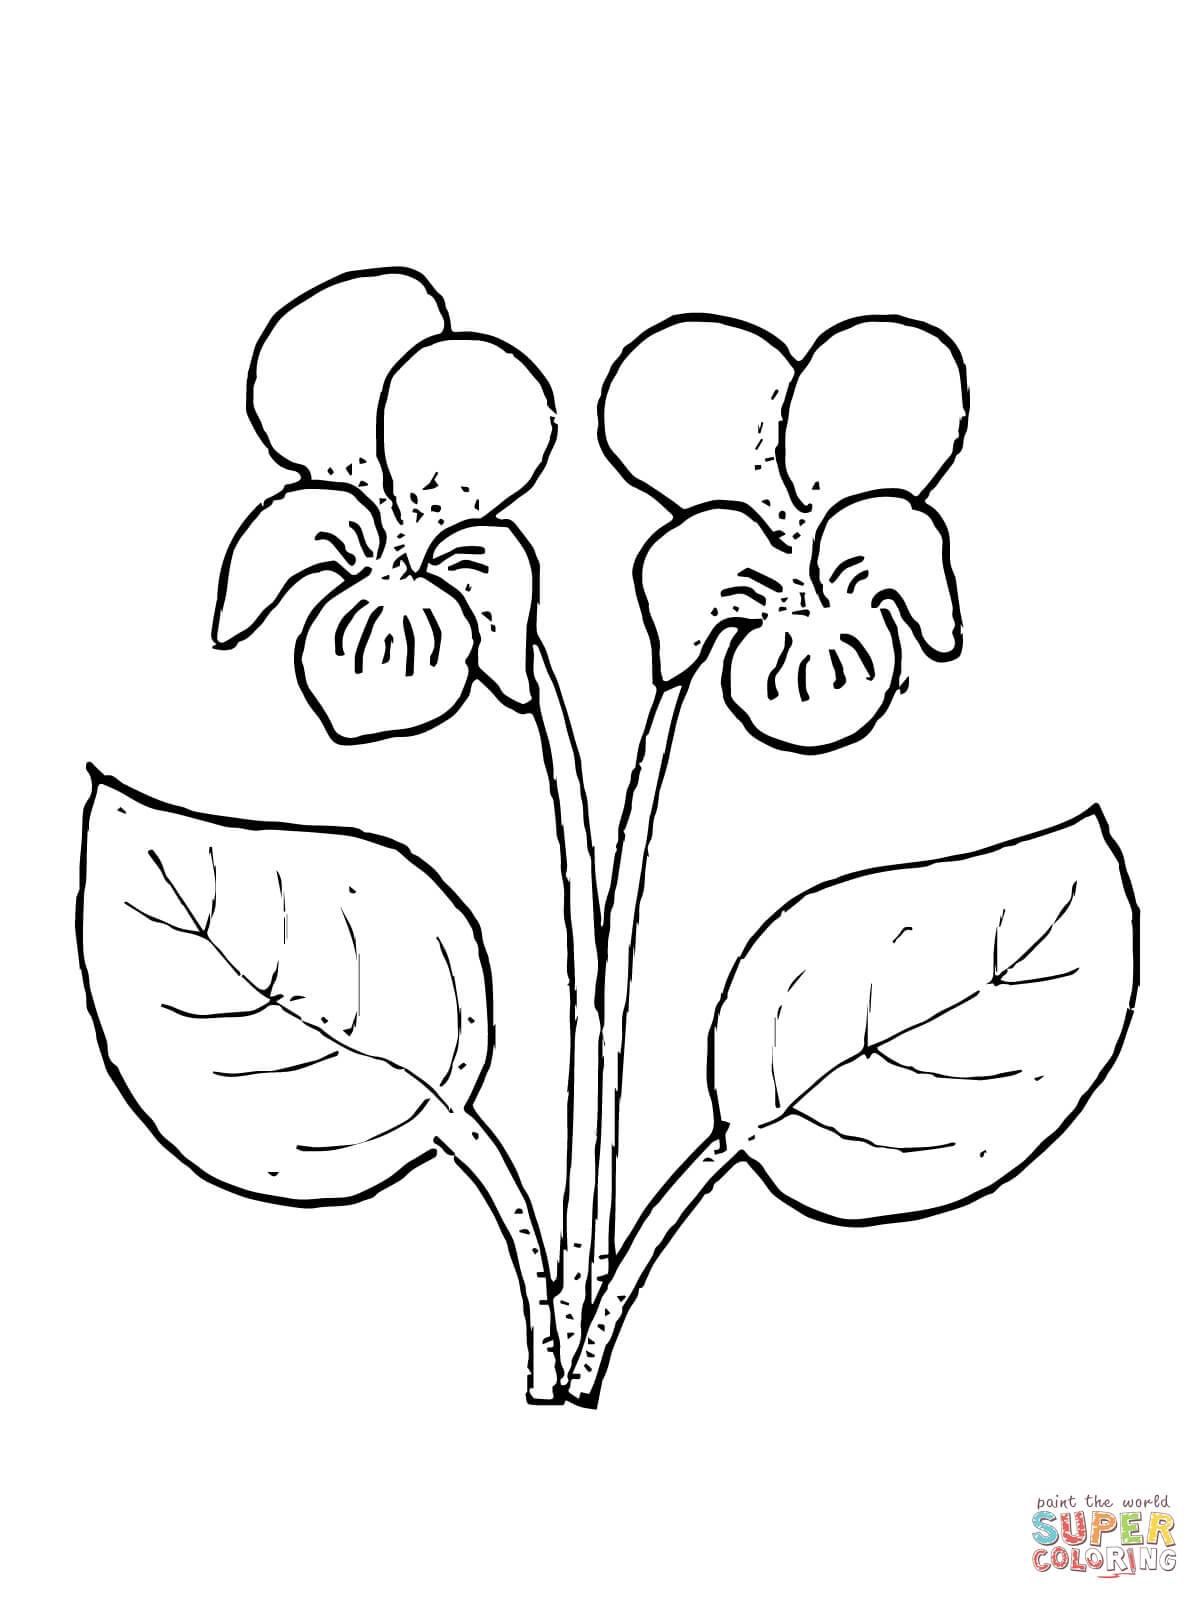 How To Draw A Violet Flower : violet, flower, Violet, Flower, Coloring, Printable, Pages